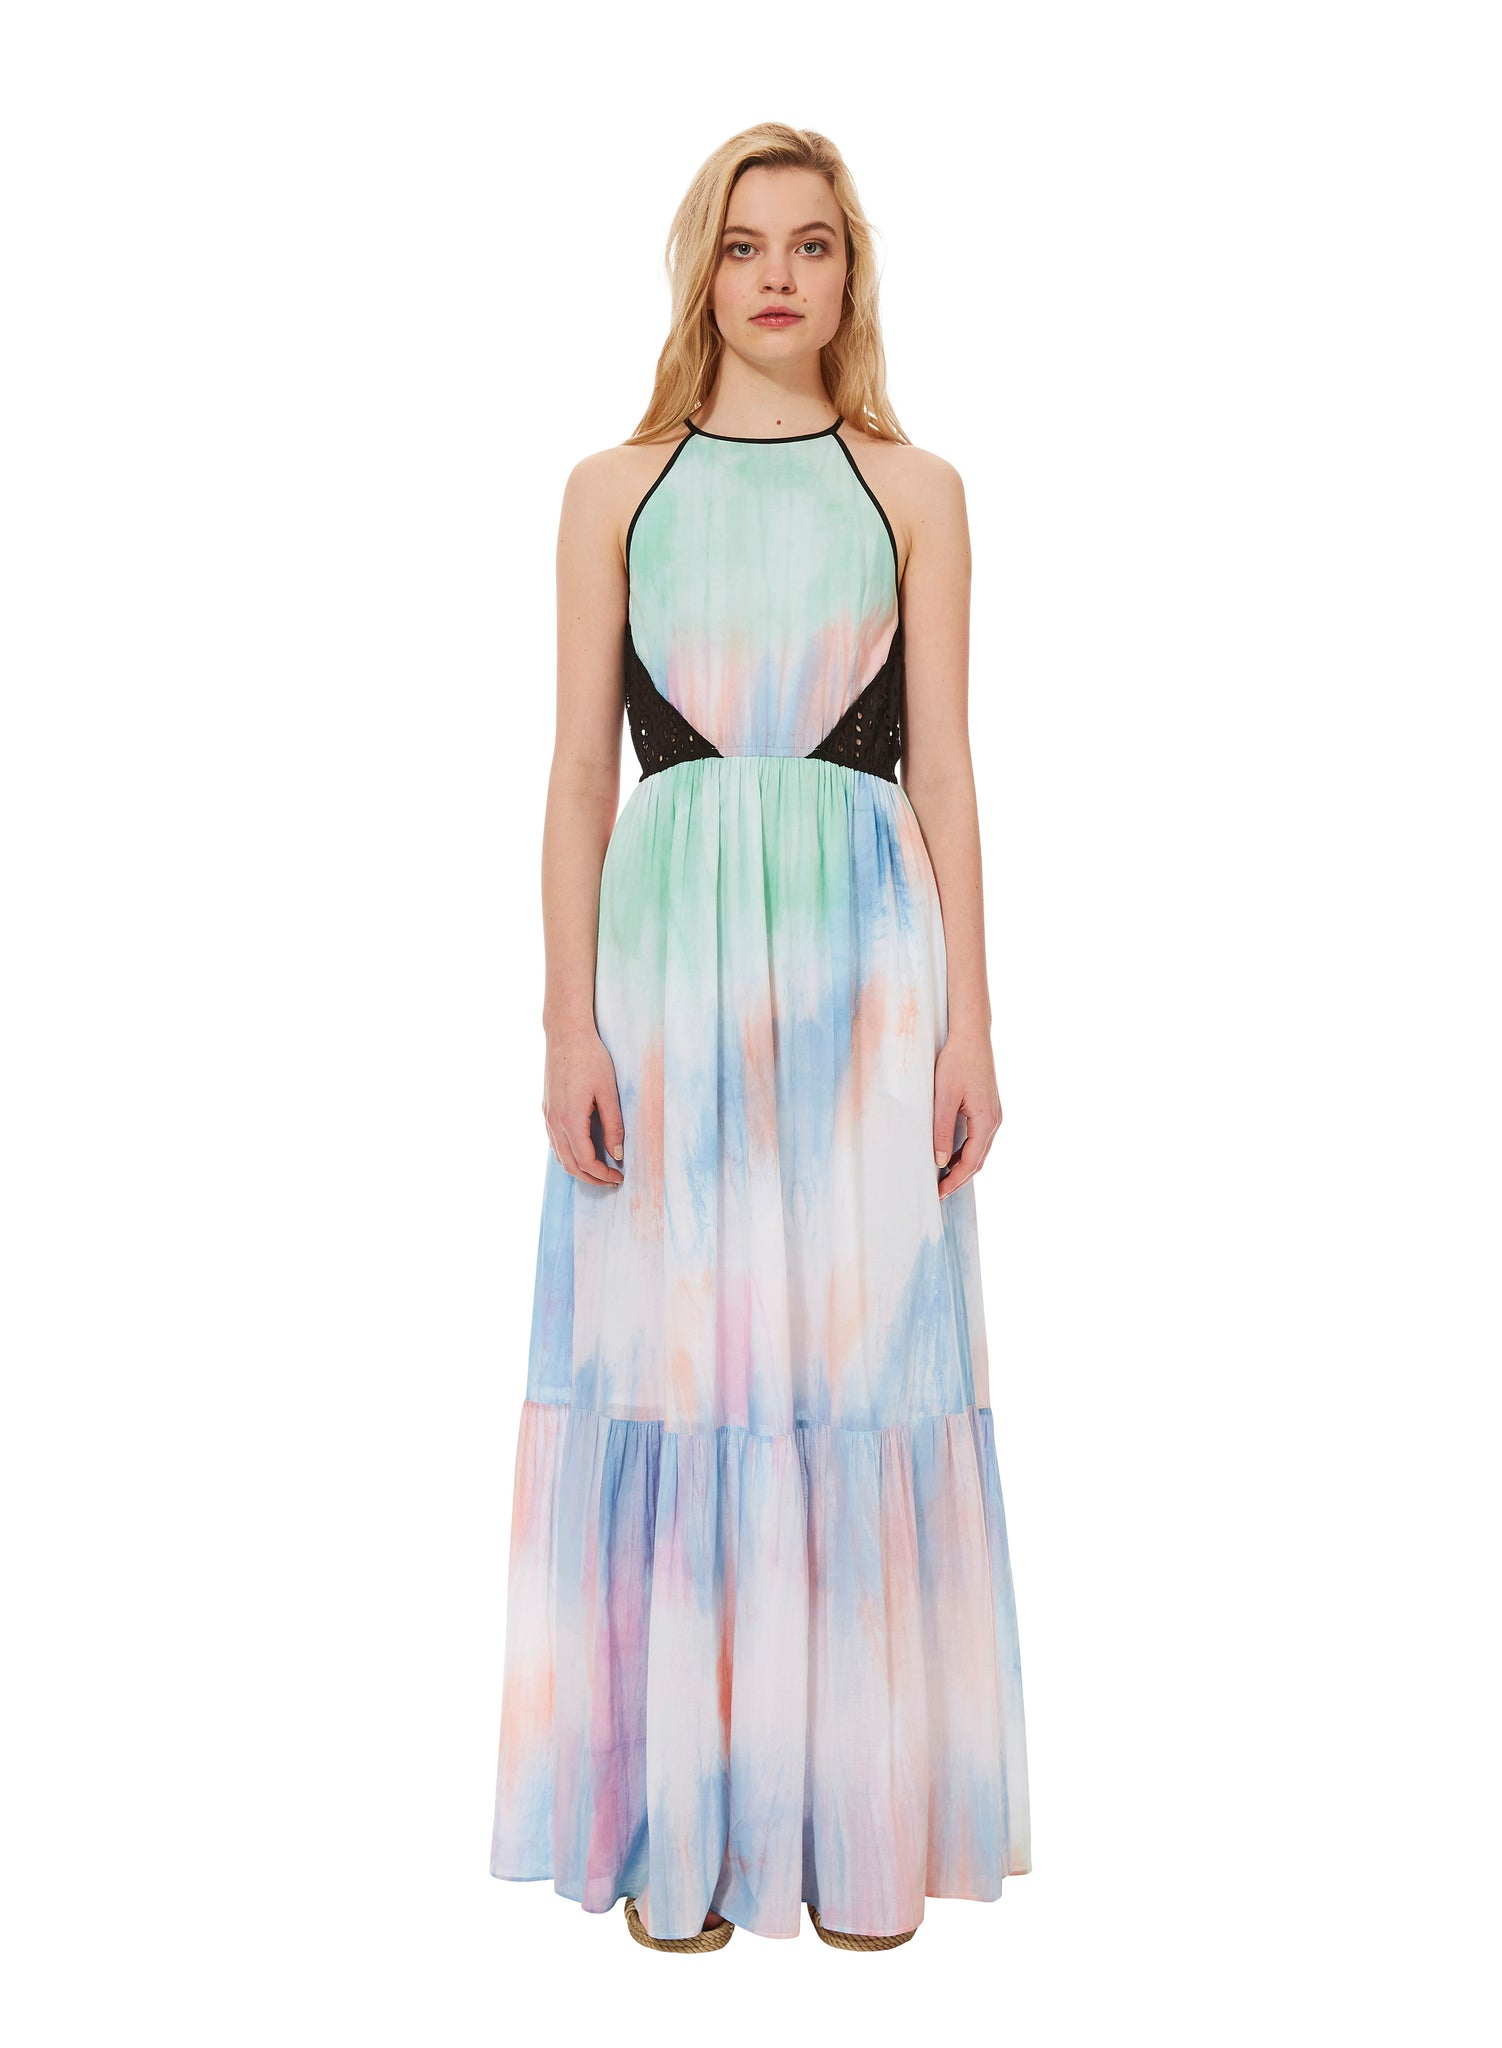 TIE-DYE CLOUD maxi dress